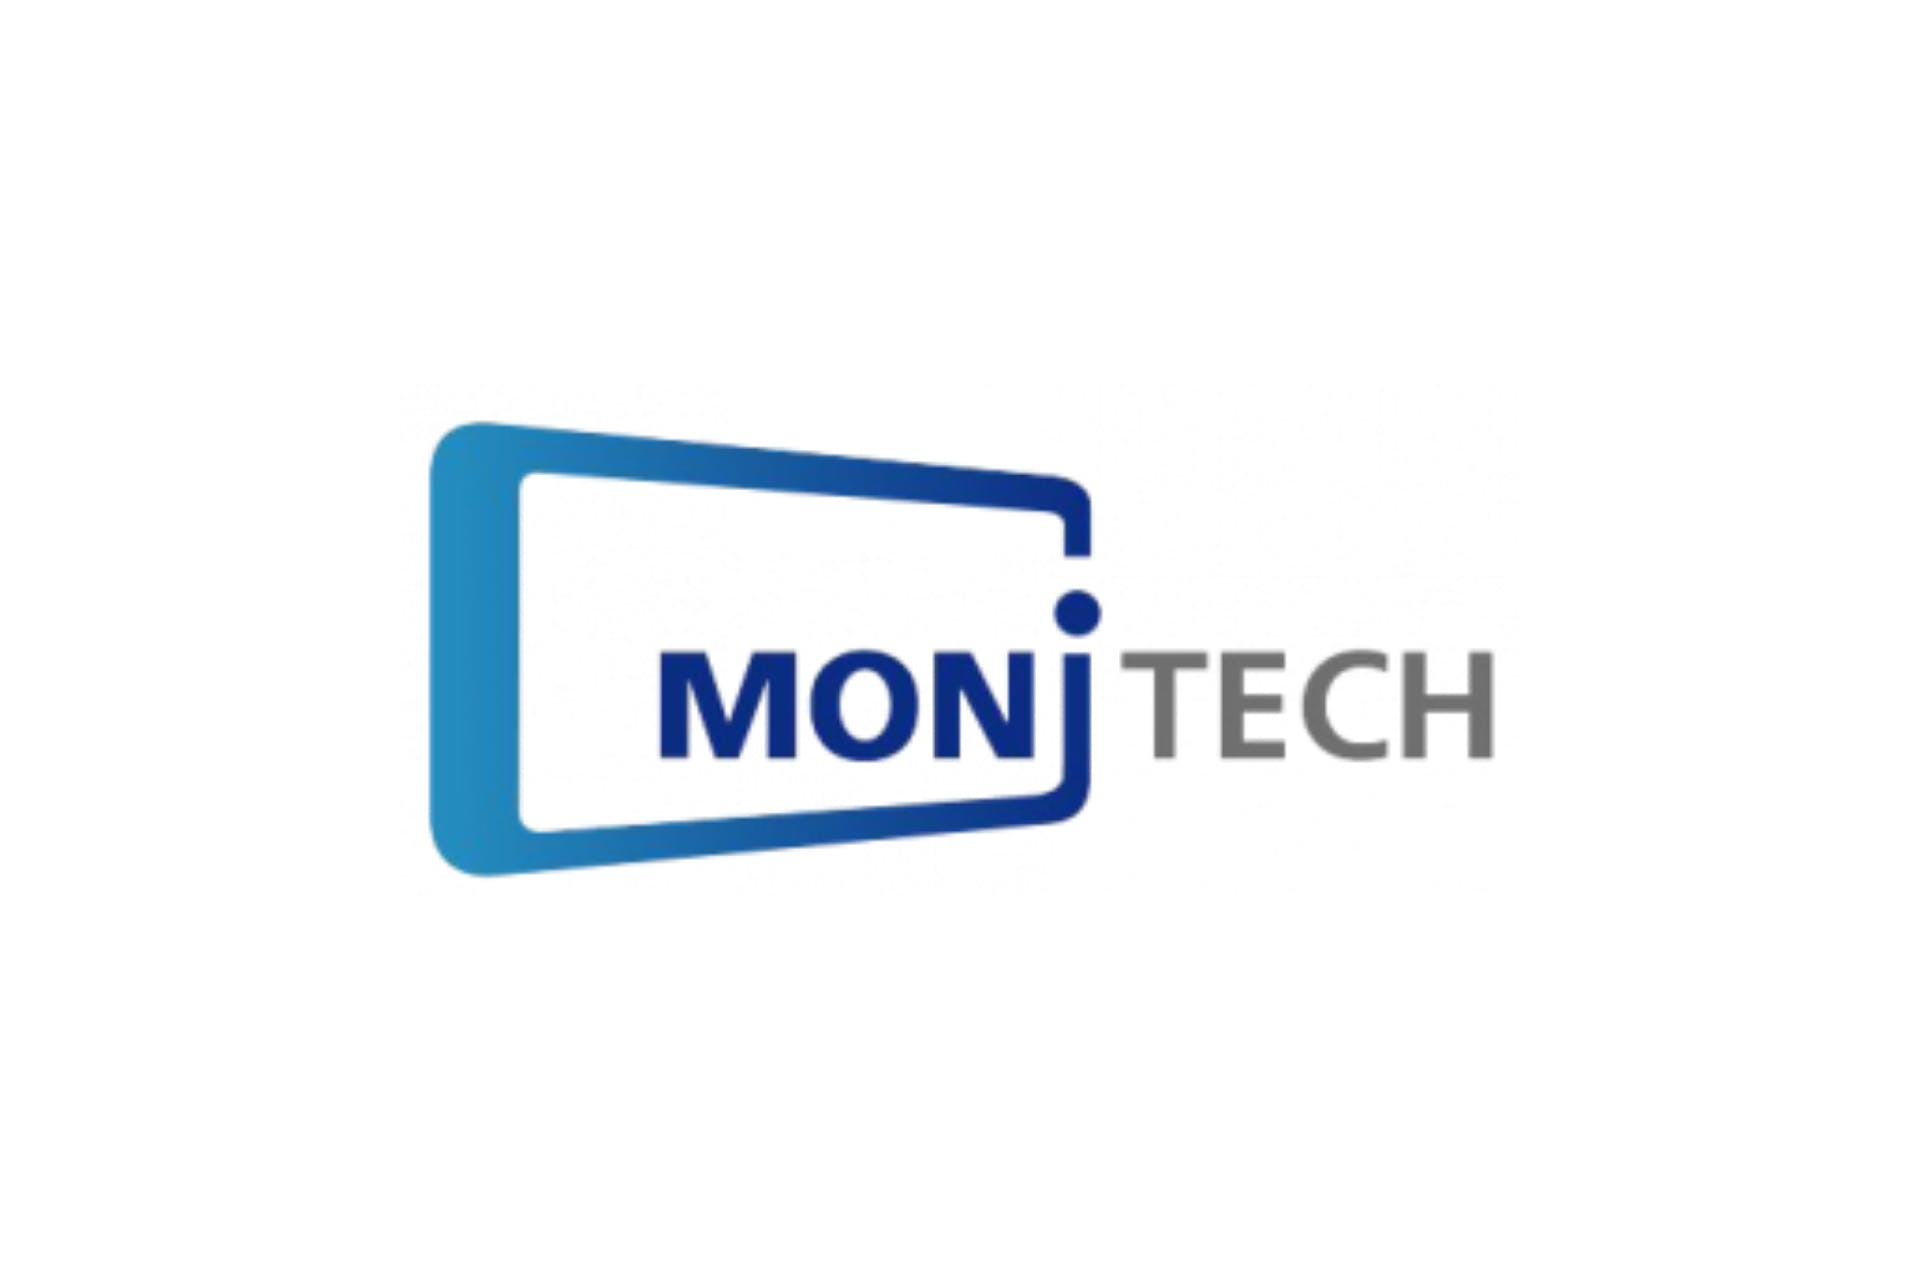 MONITECH CO., Ltd